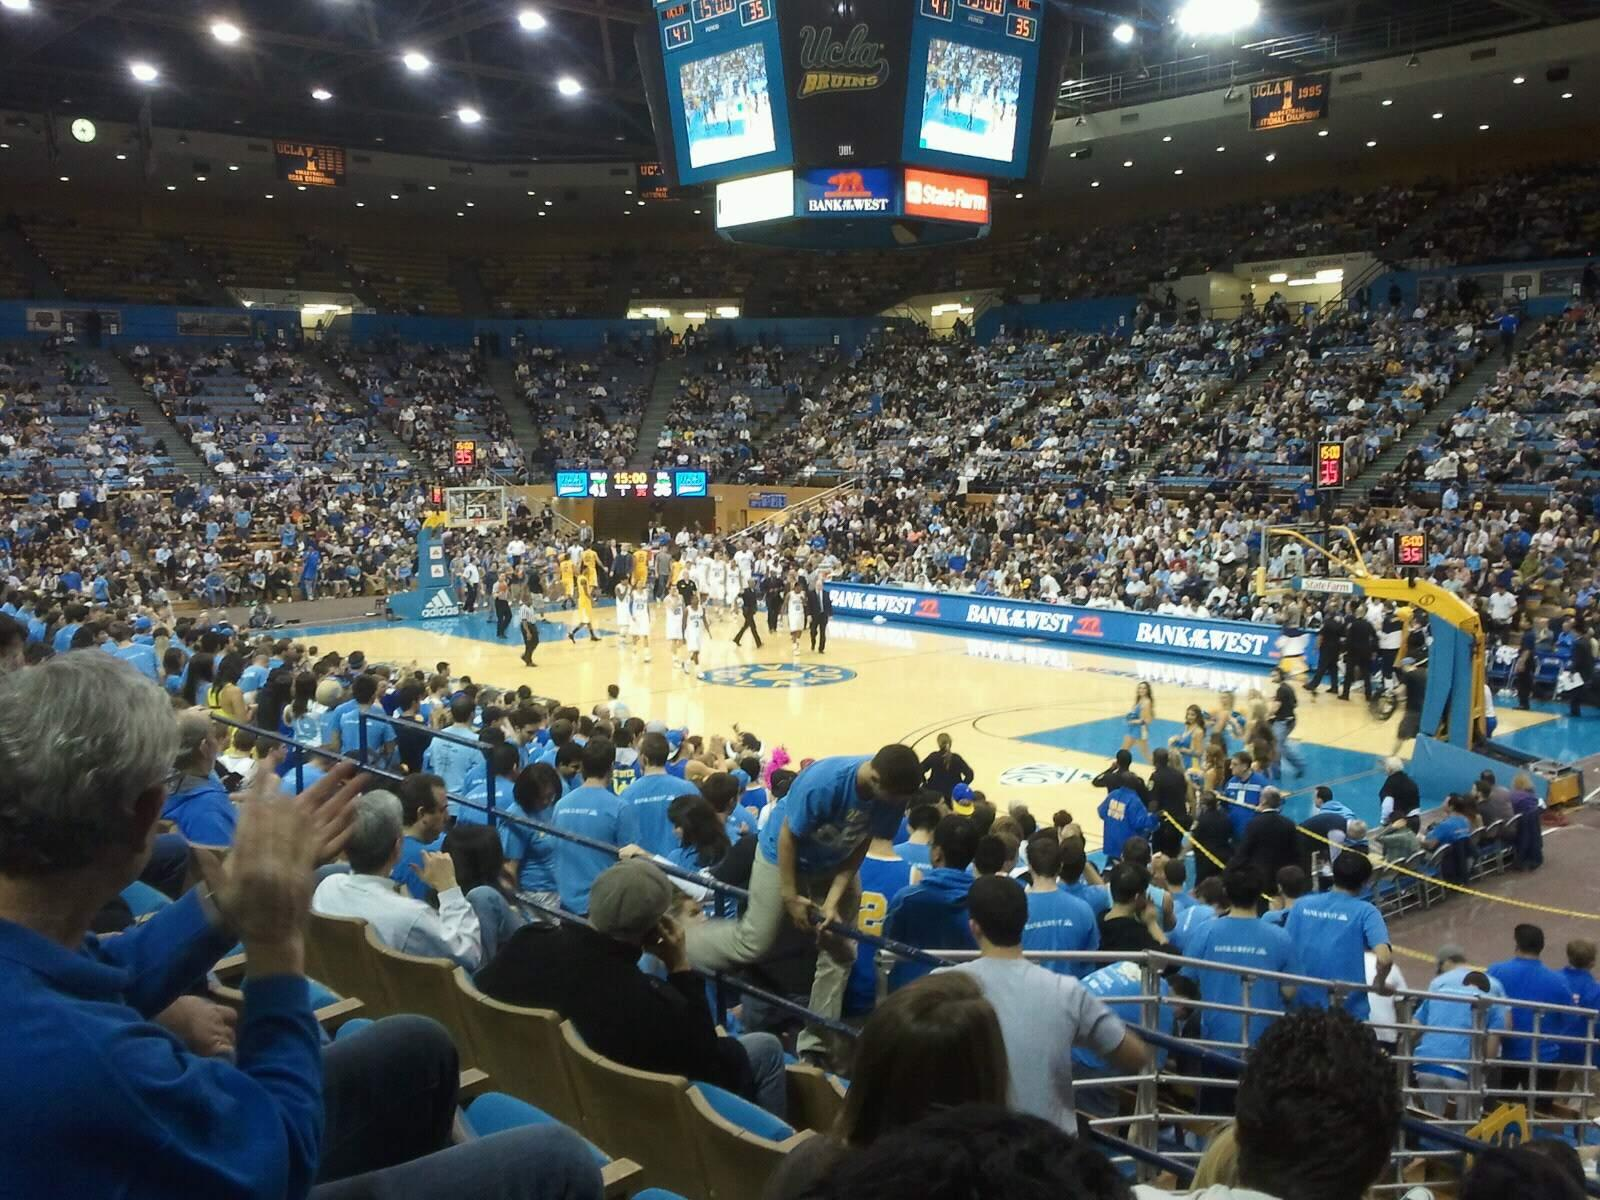 Pauley Pavilion Section 112 Row 4